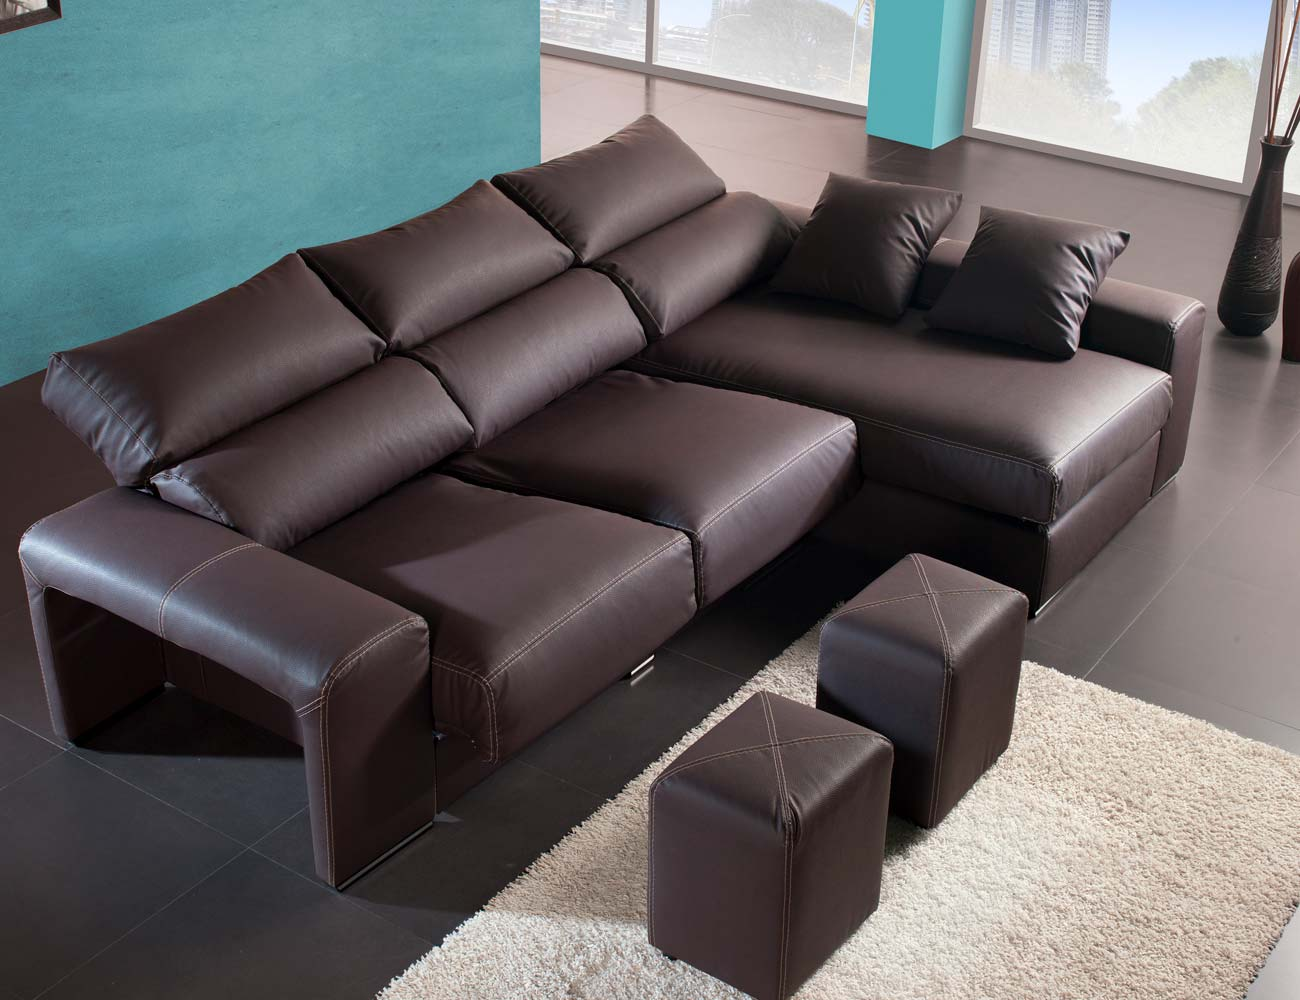 Sofa chaiselongue moderno polipiel chocolate poufs taburetes17